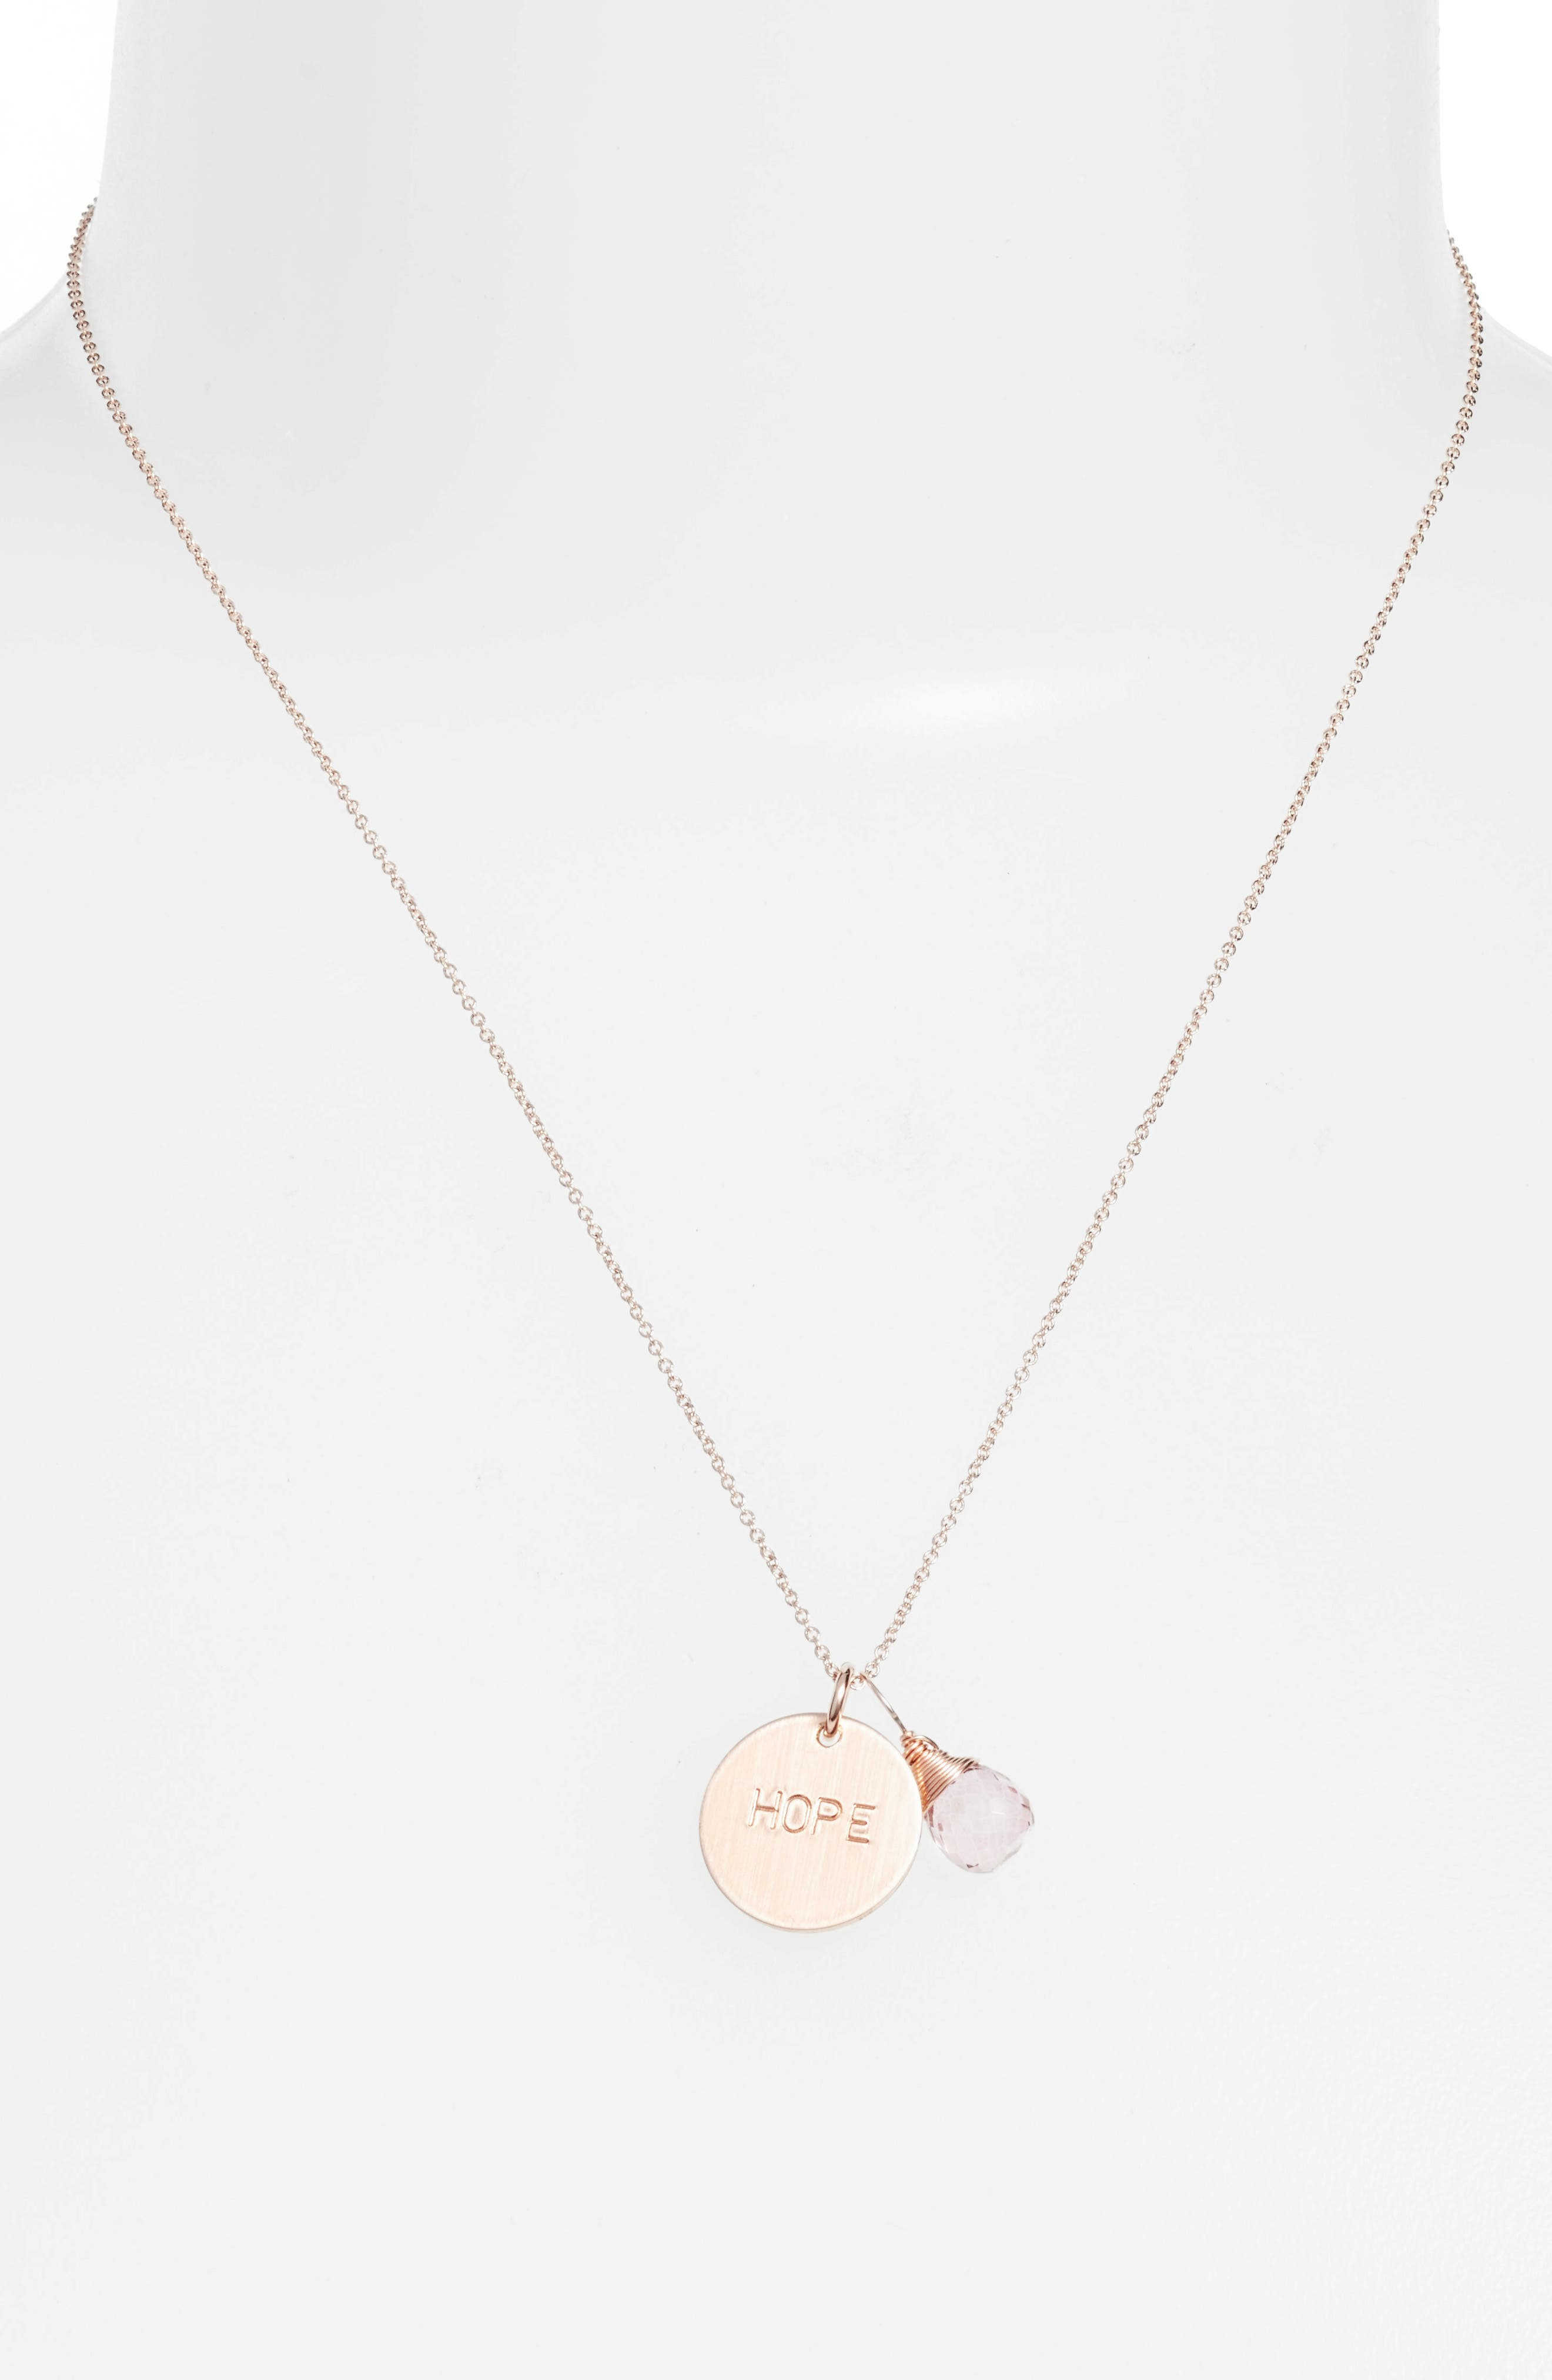 Pink Topaz & Hope Disc Necklace,                             Main thumbnail 1, color,                             Rose Gold